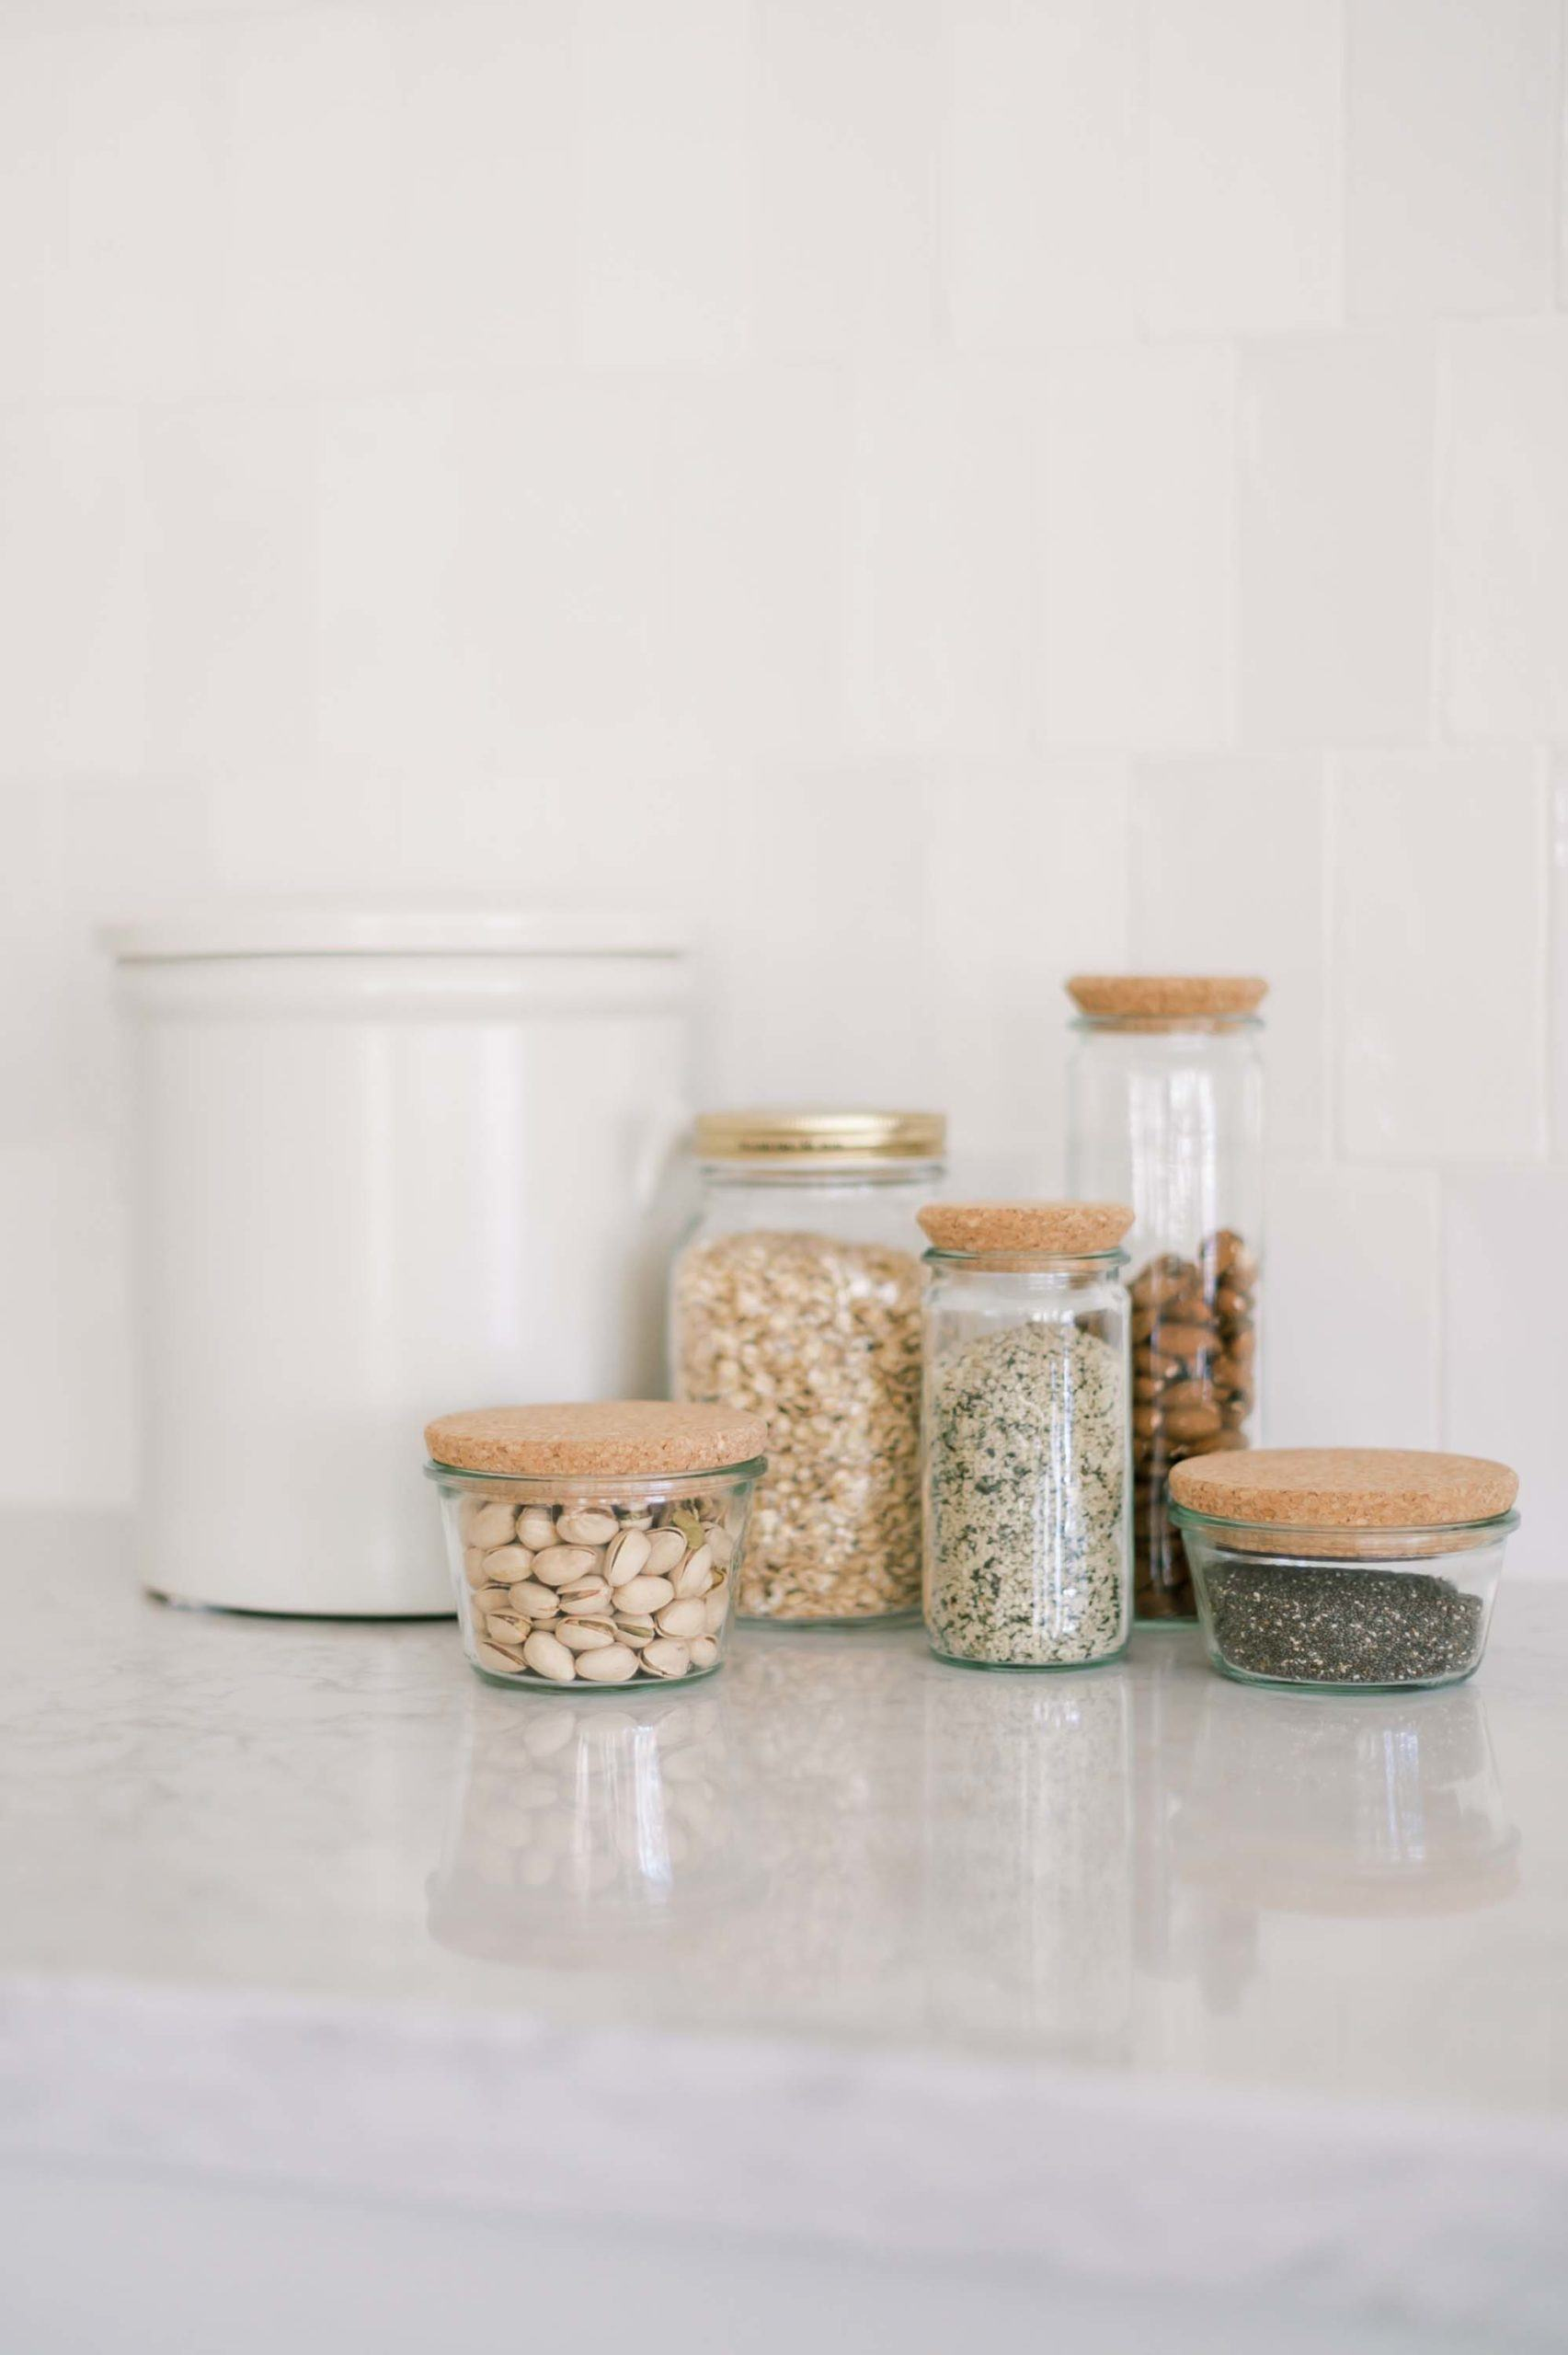 How to organize and store your dried goods